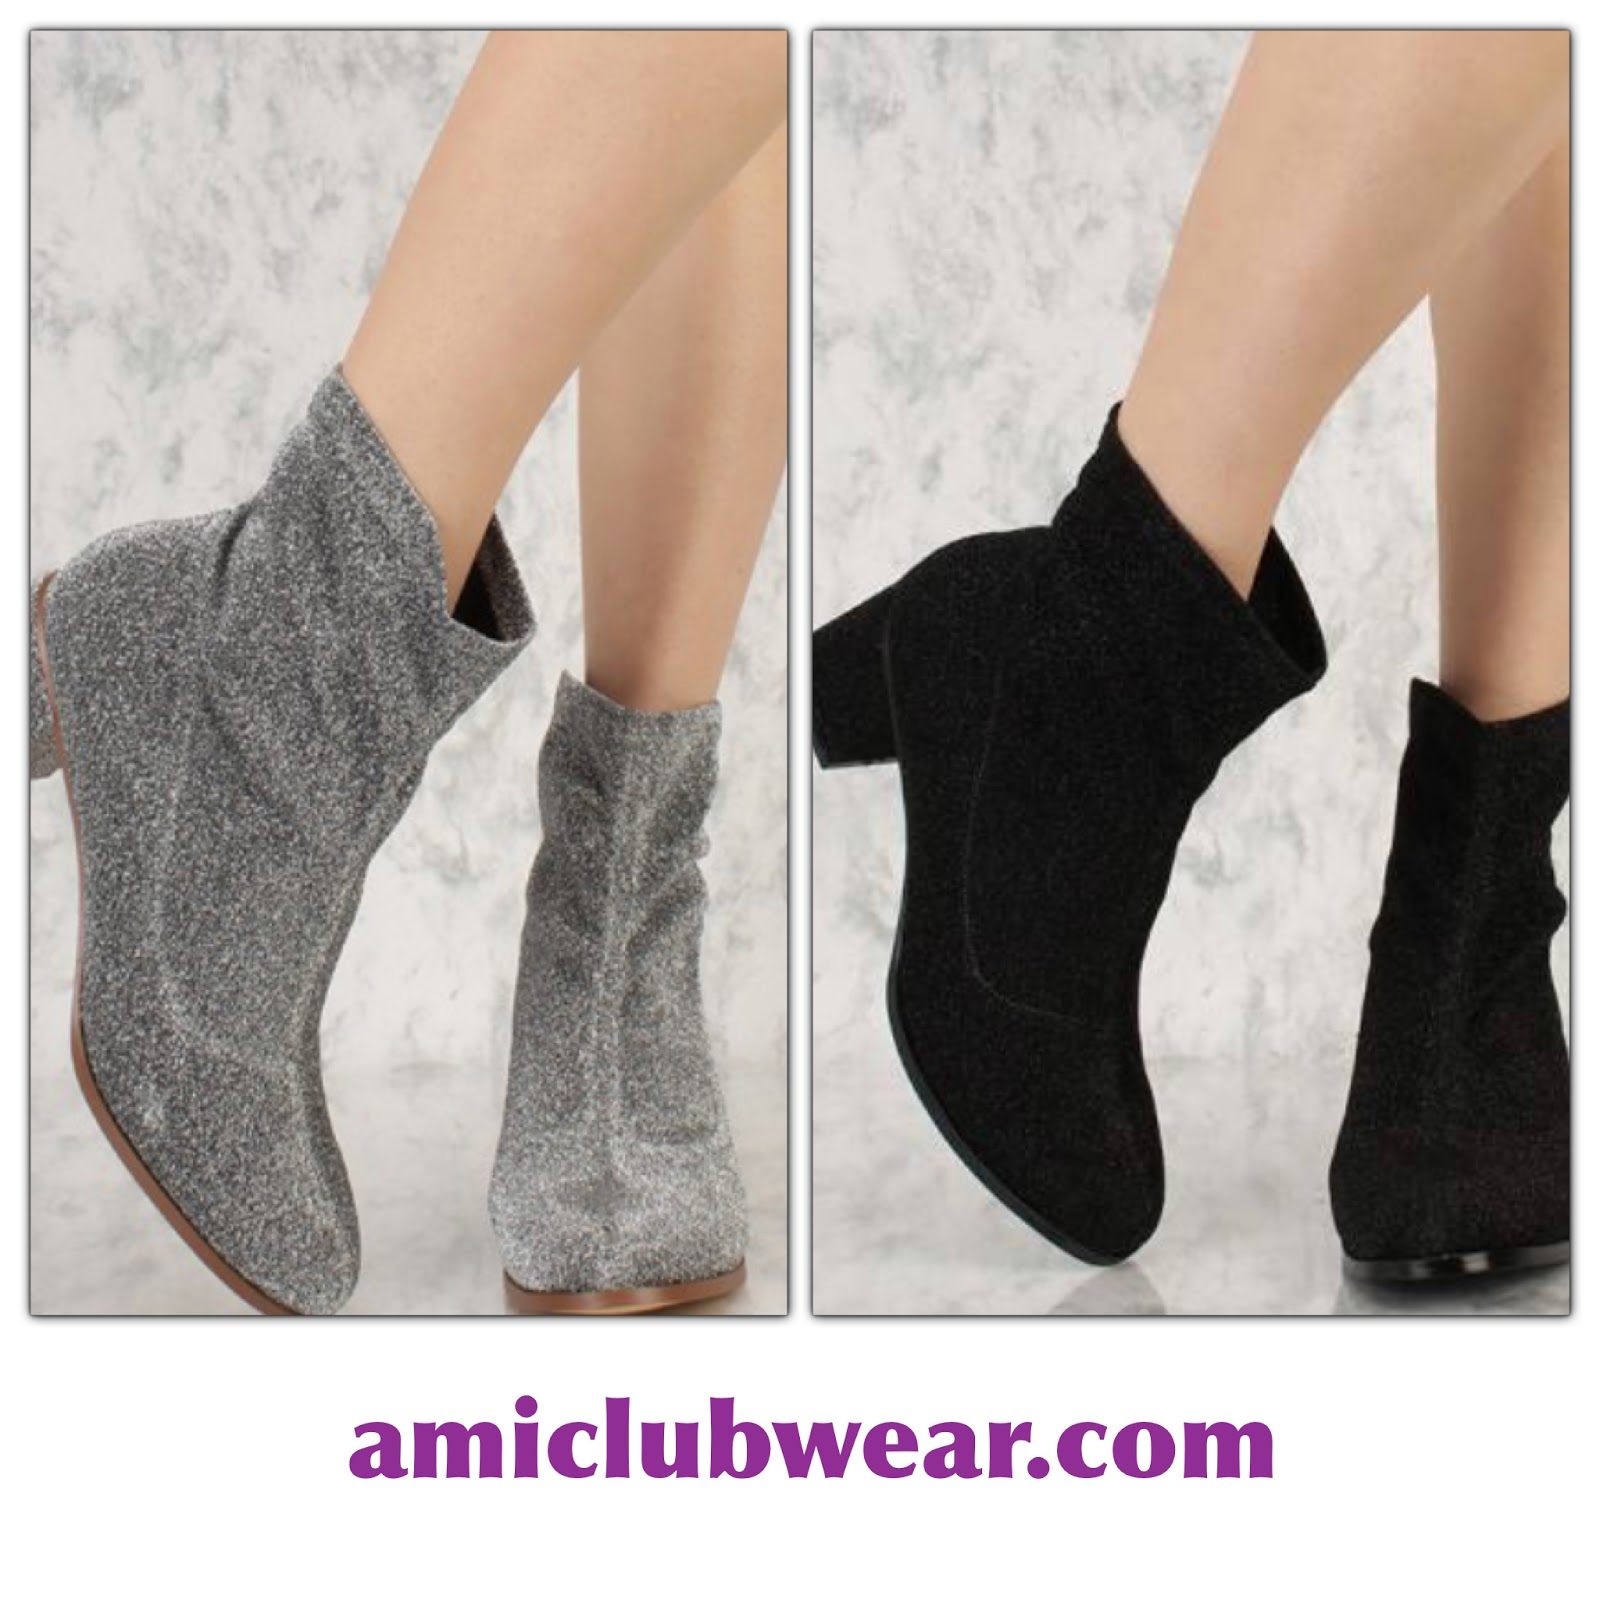 0c08af217fd6 Last Minute Valentine s Shop! Get it before Valentine s Day! Use Code   LAST55 booties